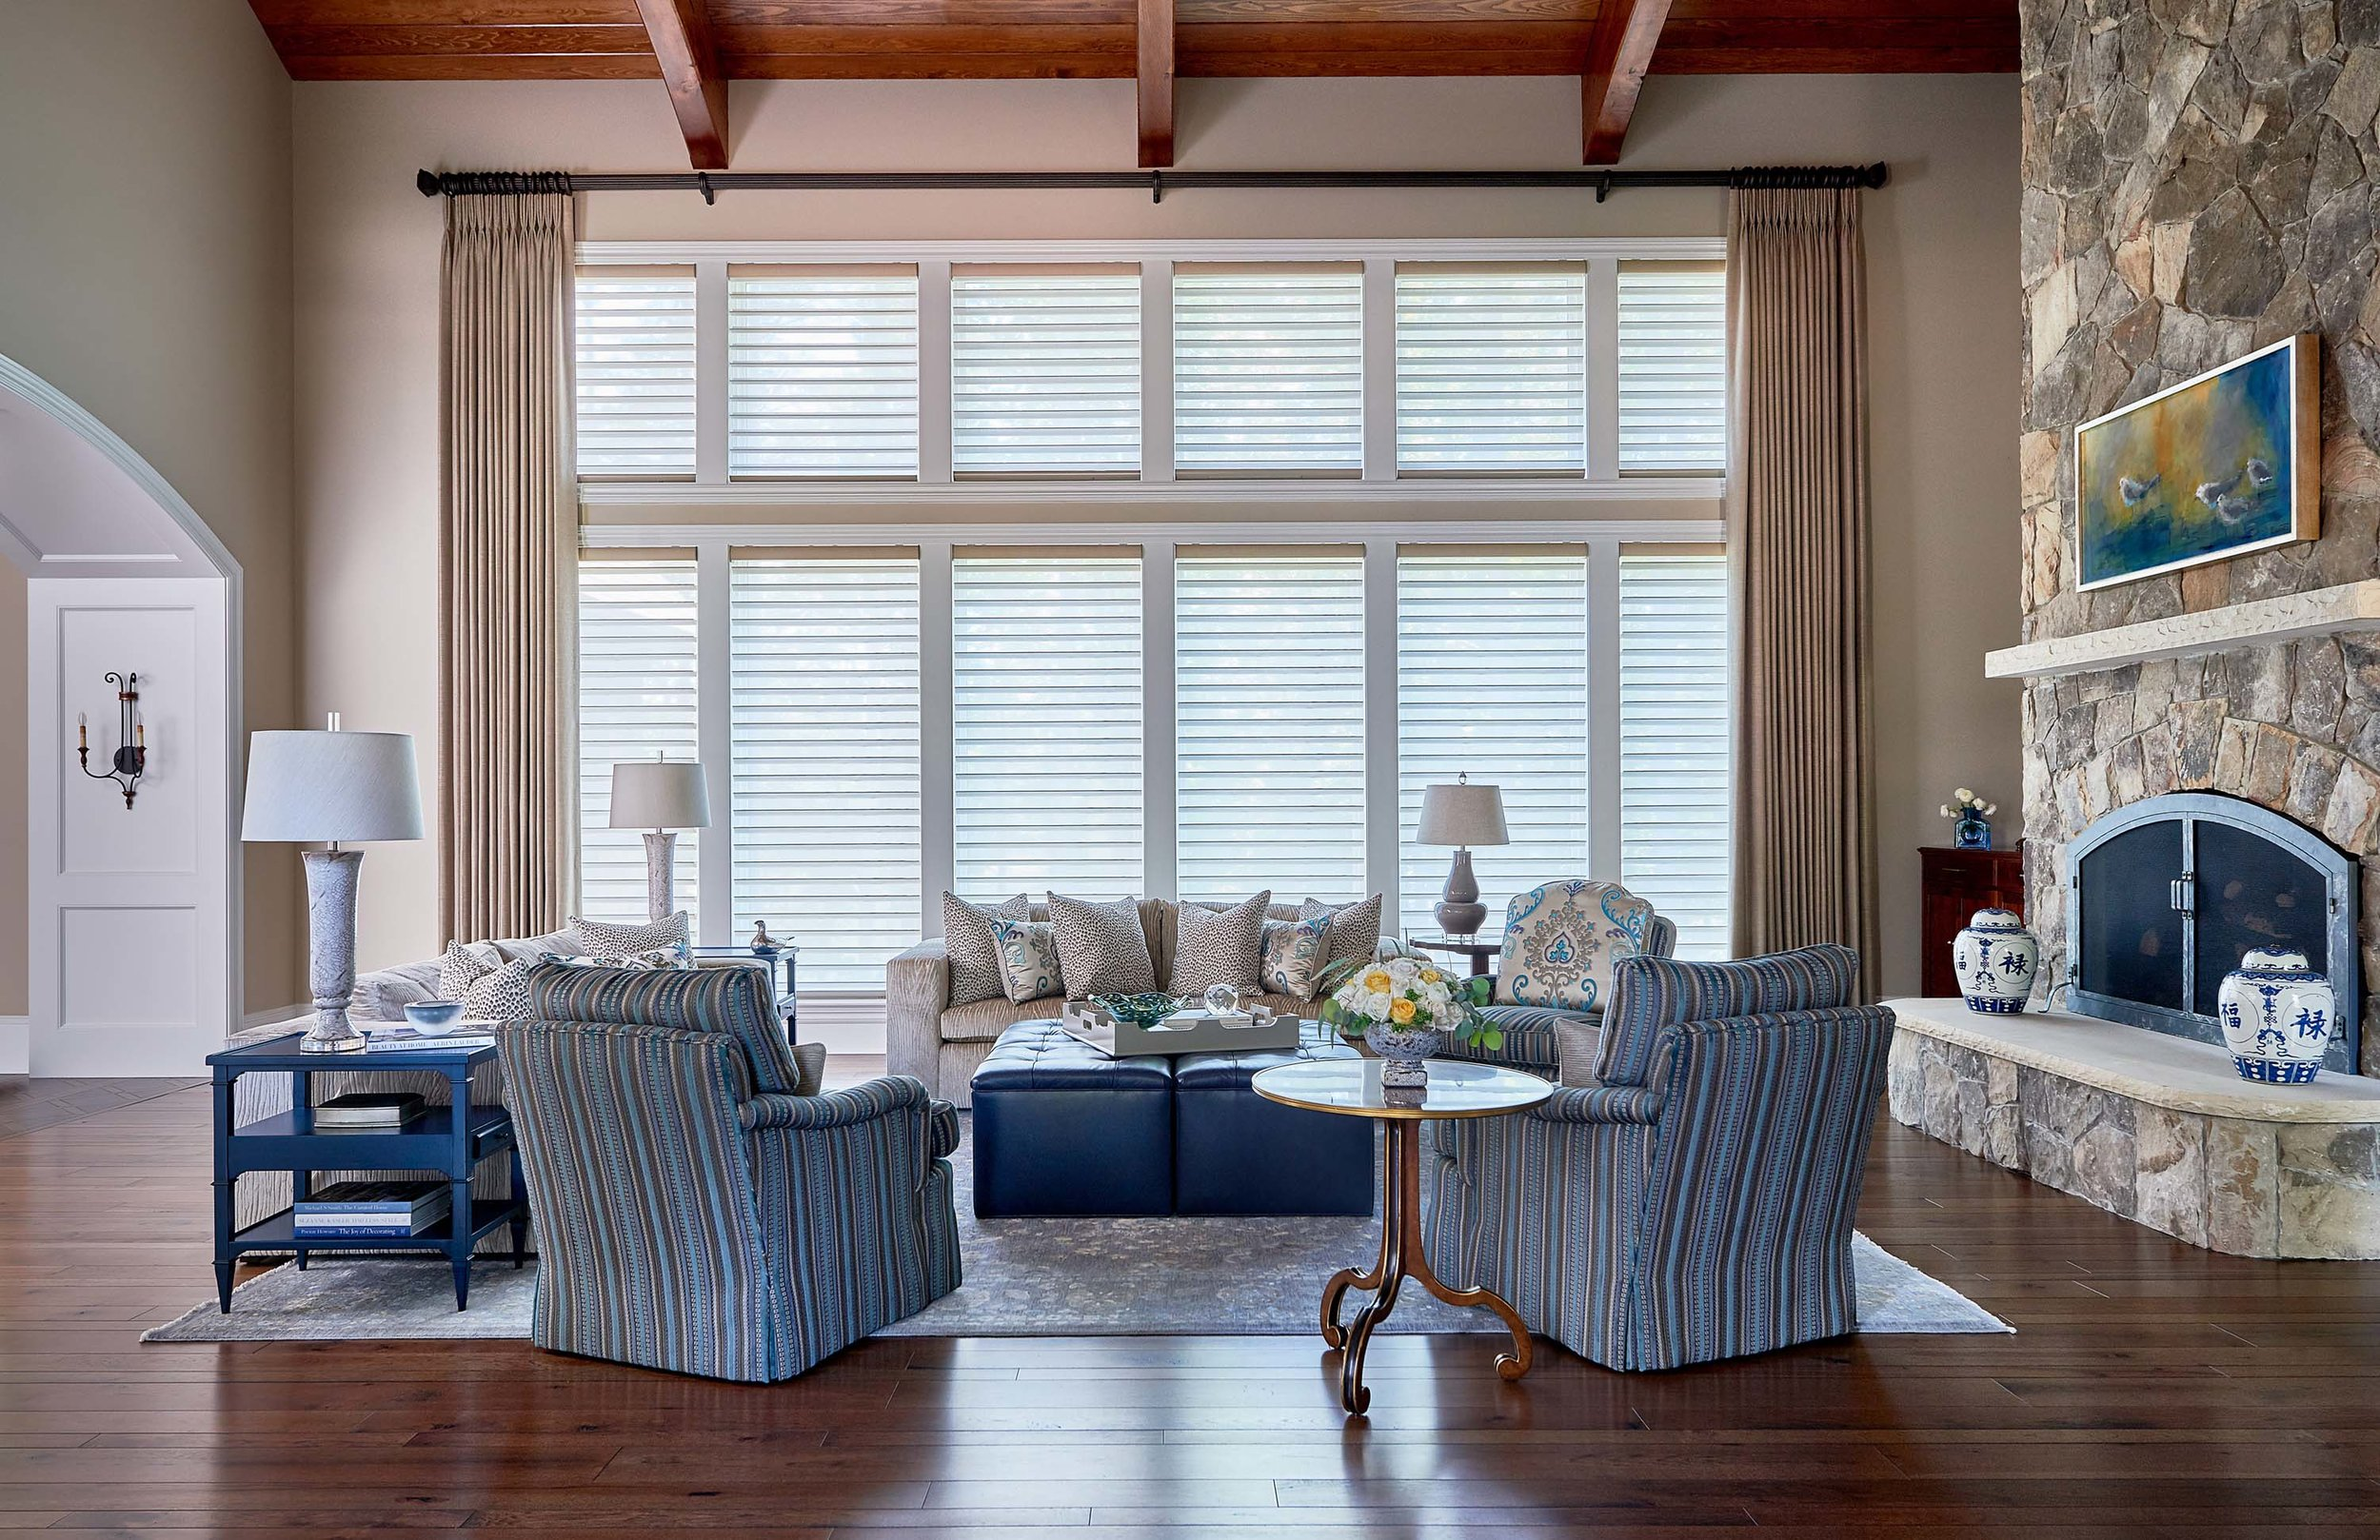 Grand living room - large window, blue and gray rug with neutral and blue upholstered sofa and chairs